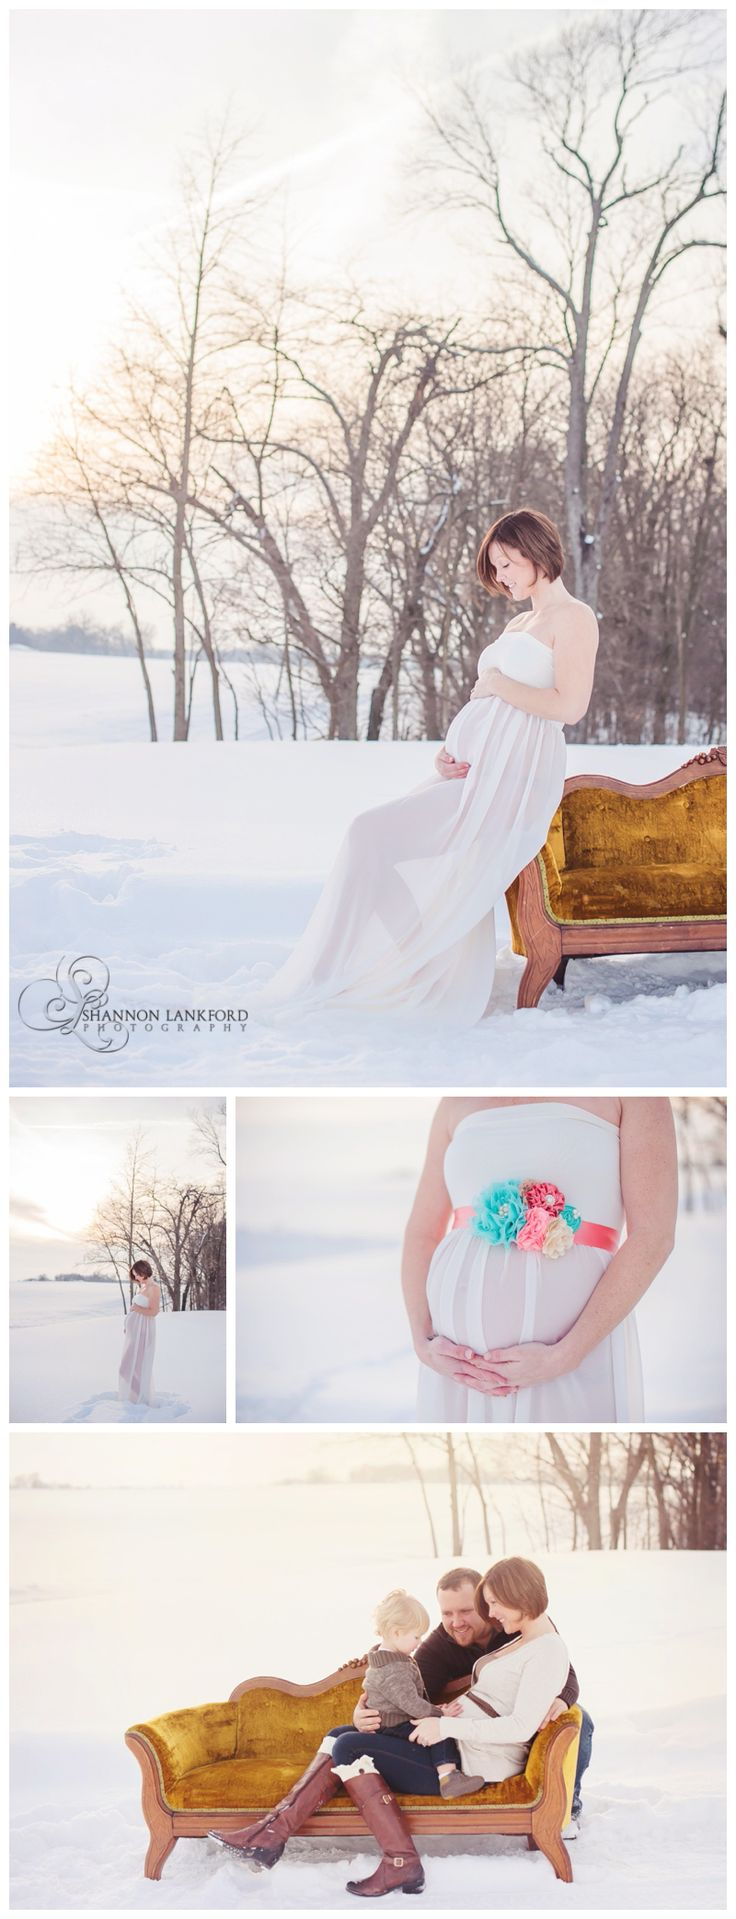 photography  shoes philippines lankford white maternity store outdoor gown snow in shannon basketball portraits  maternity